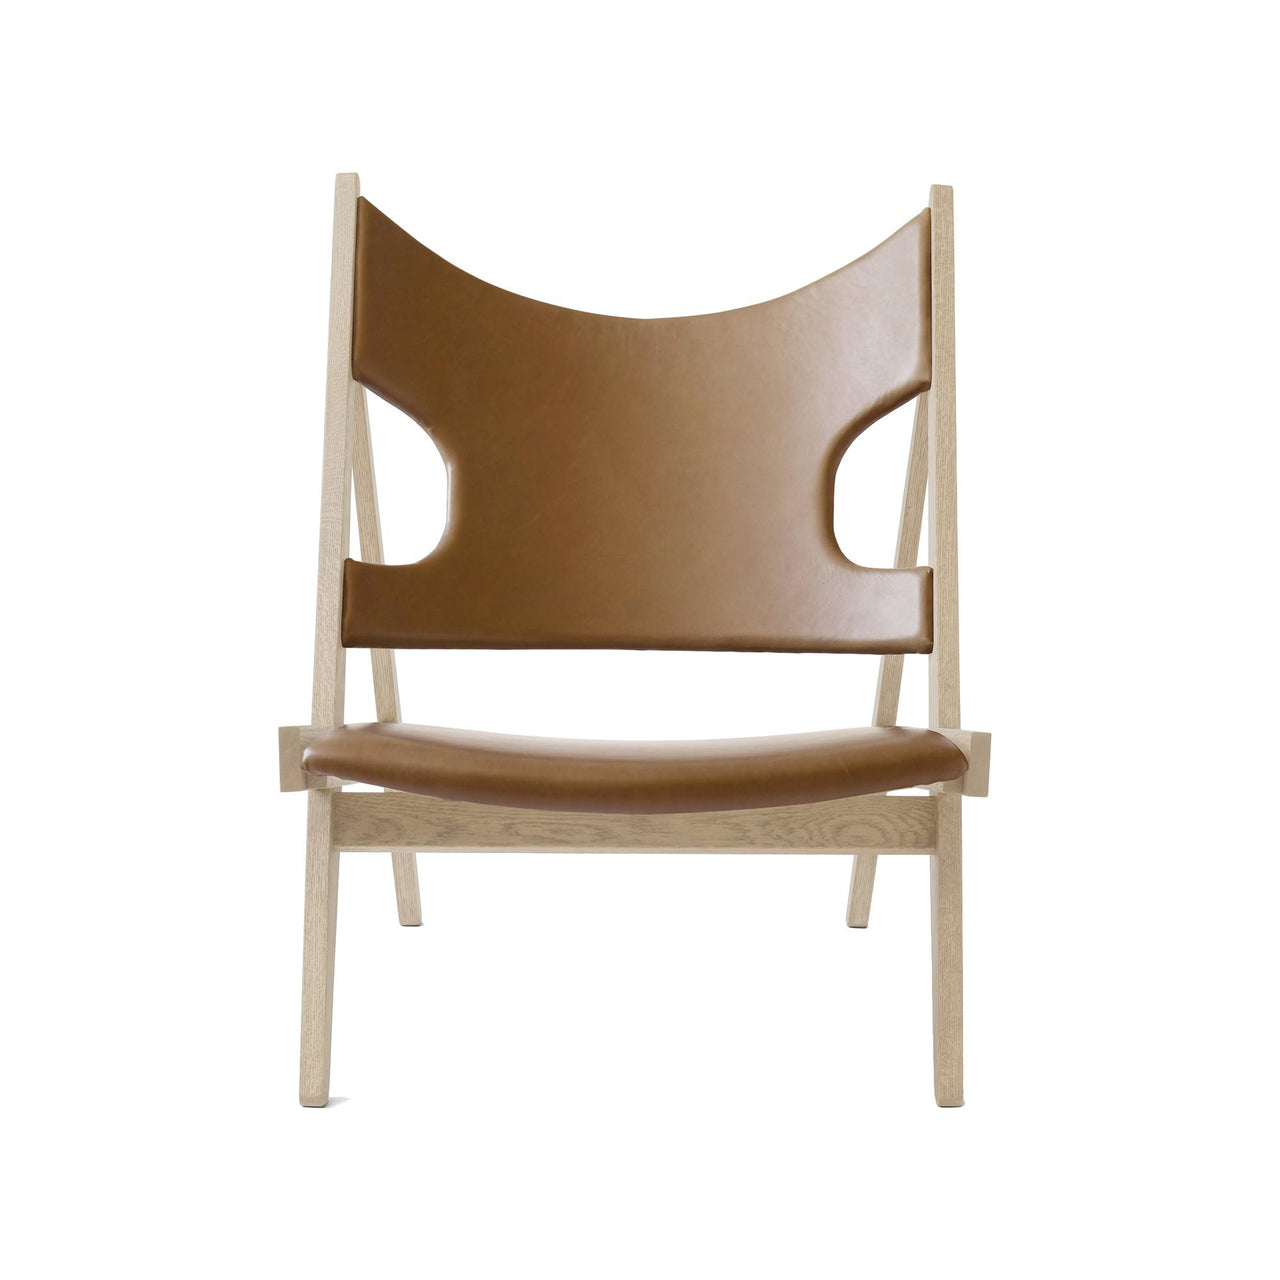 Knitting Chair: Dakar 0250